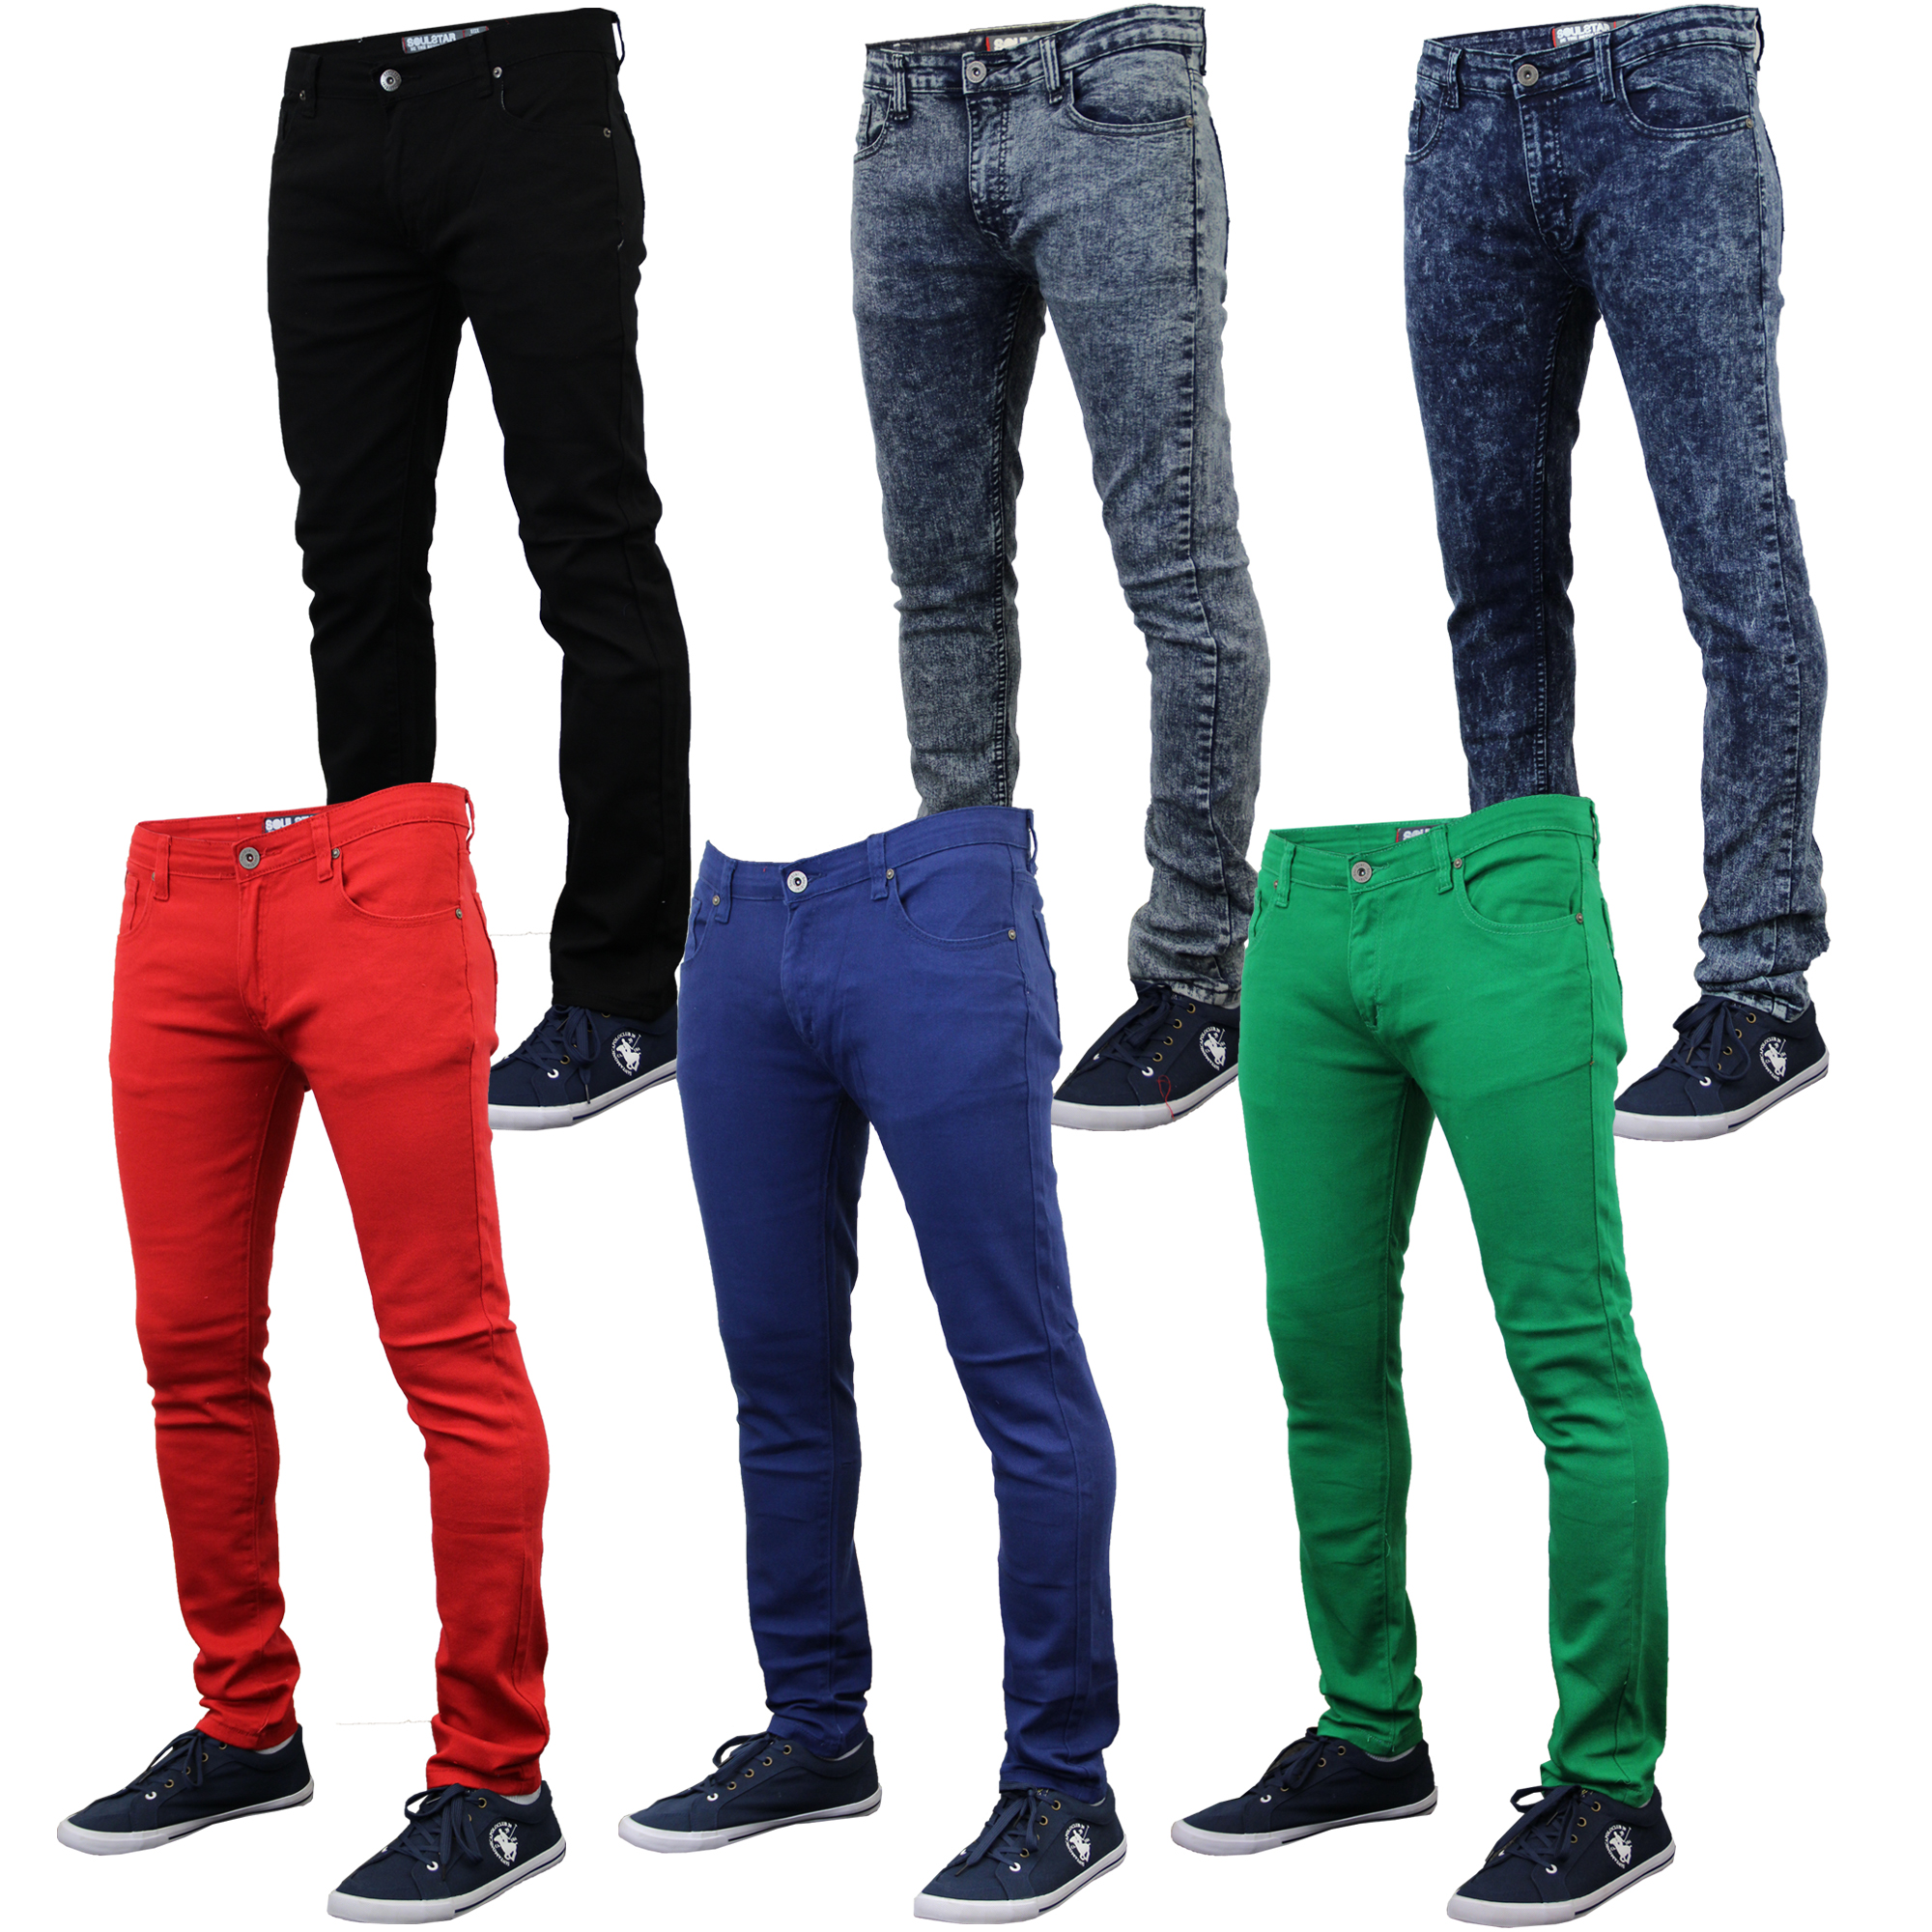 919a8776 Details about Mens Skinny Jeans Soul Star Slim Fit Stretch Denim Pants  Trousers Tapered New